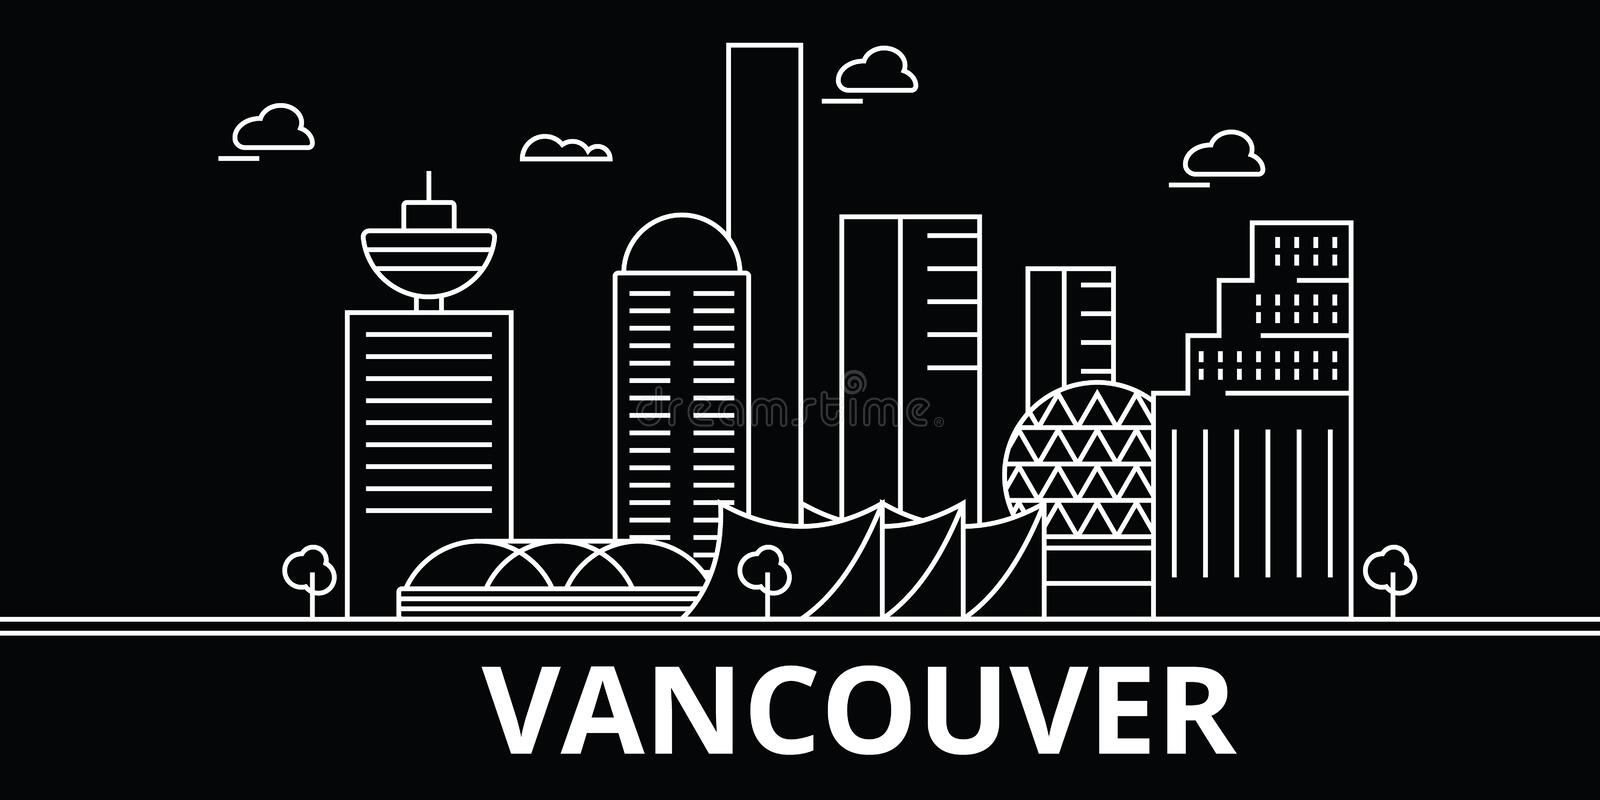 Vancouver silhouette skyline. Canada - Vancouver vector city, canadian linear architecture, buildings. Vancouver travel vector illustration